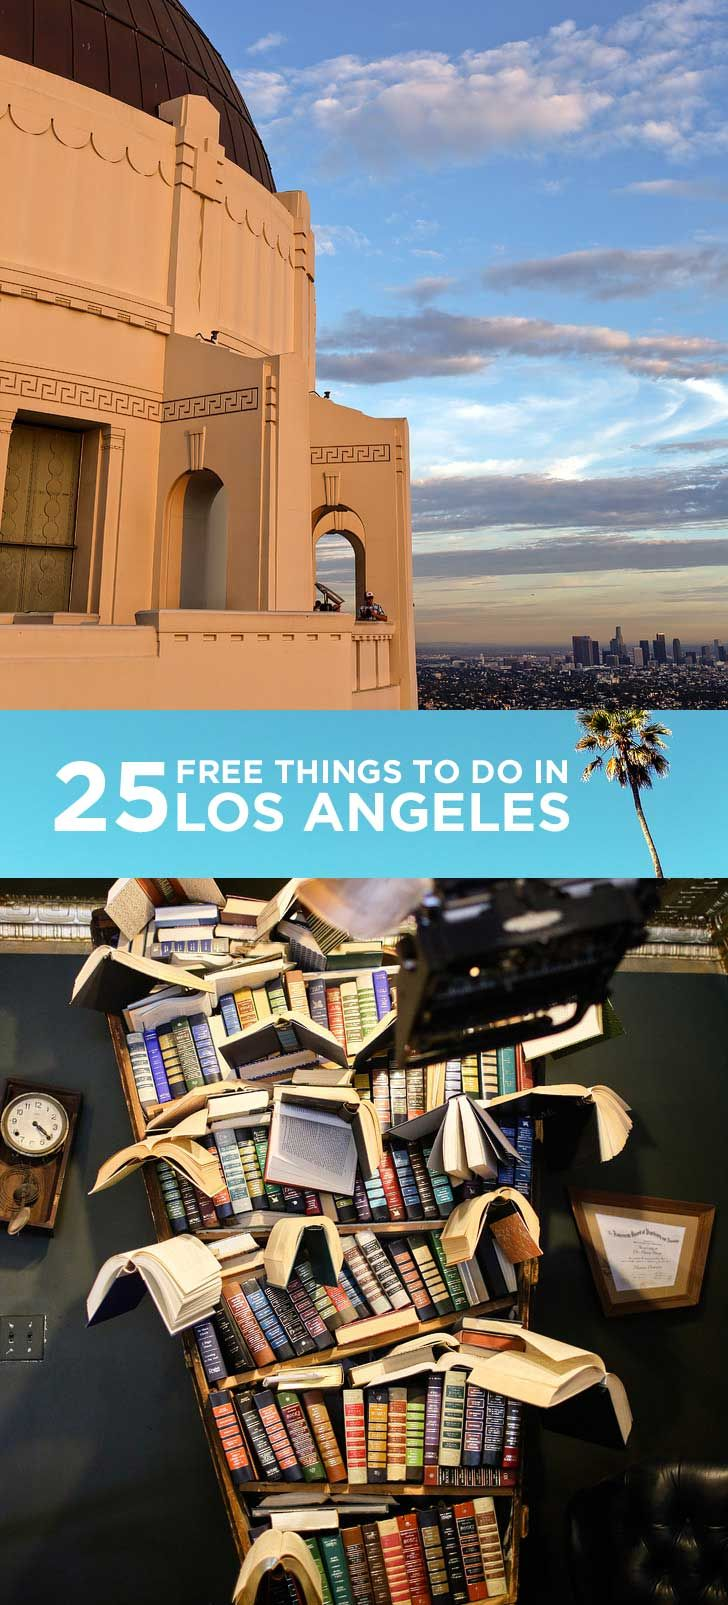 25 Free Things to Do in LA | You can never run out of things to do, and that's one thing we loved about living there. Even if you're on a really tight budget, you still have a lot of options.